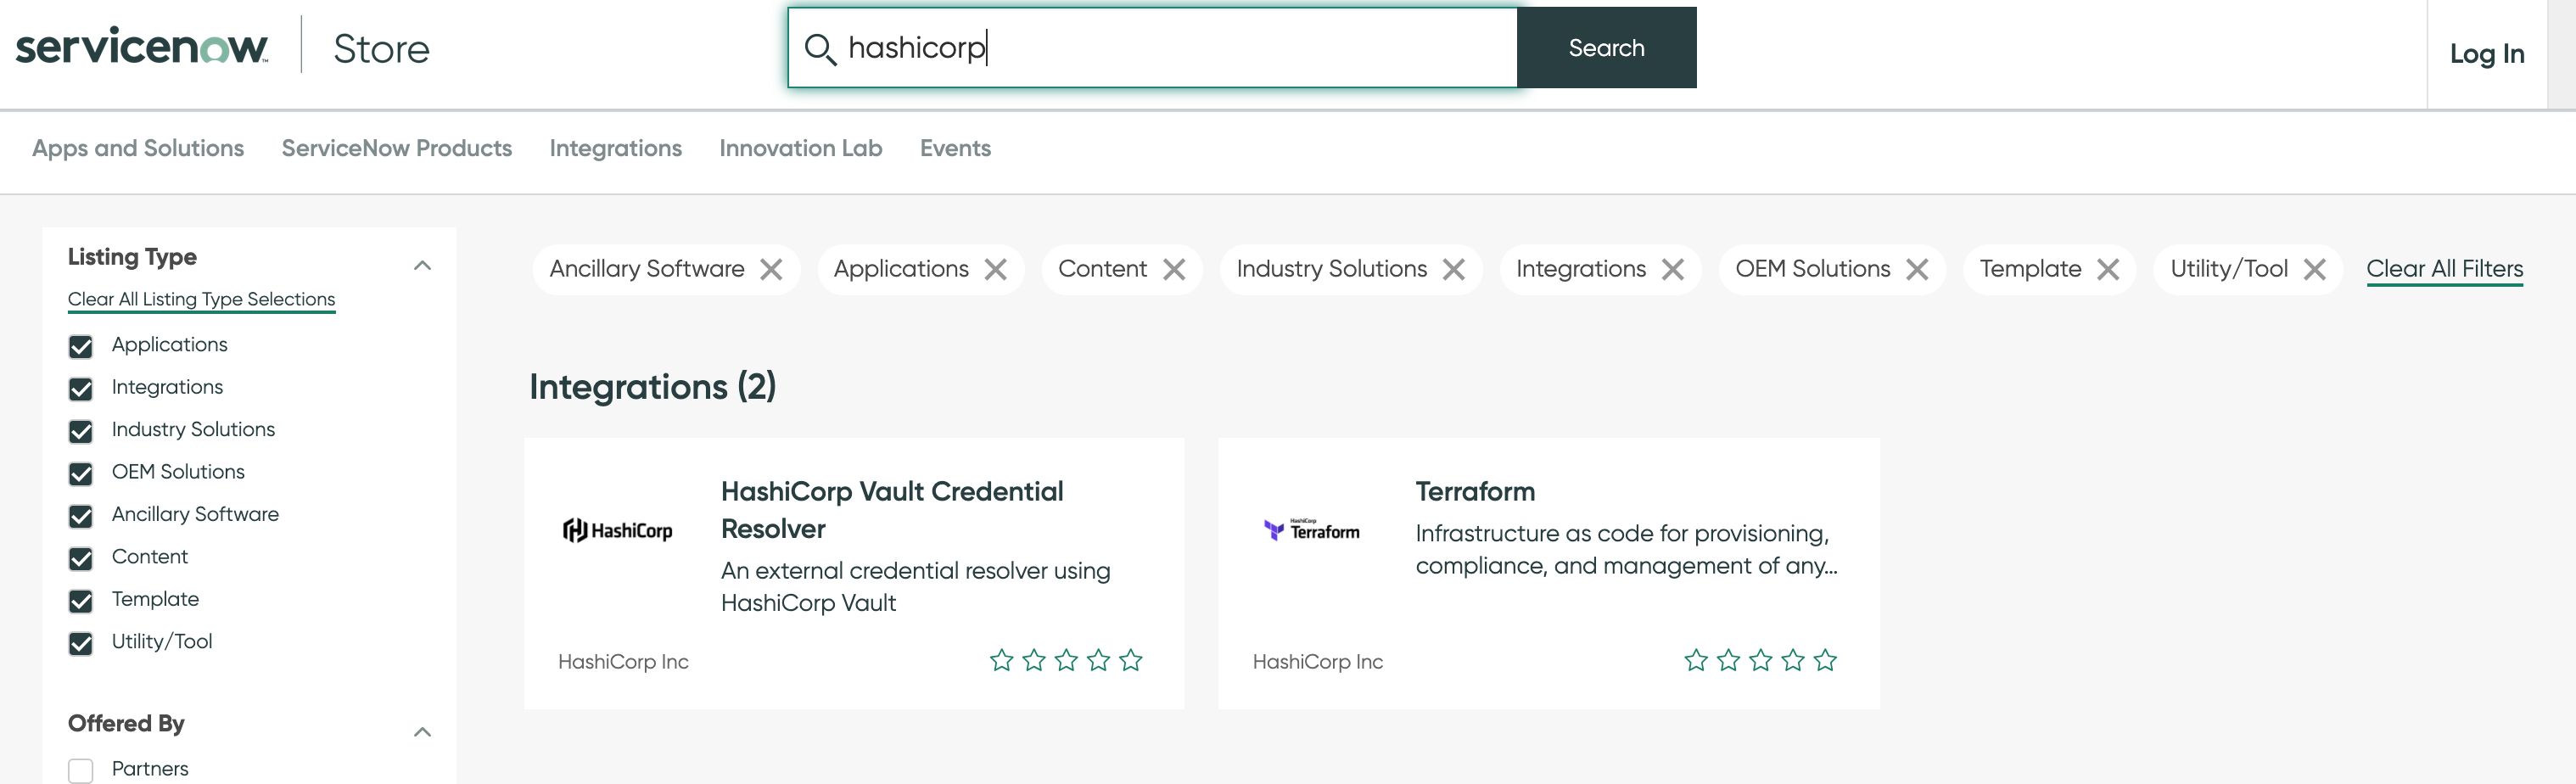 HashiCorp integrations in the ServiceNow store